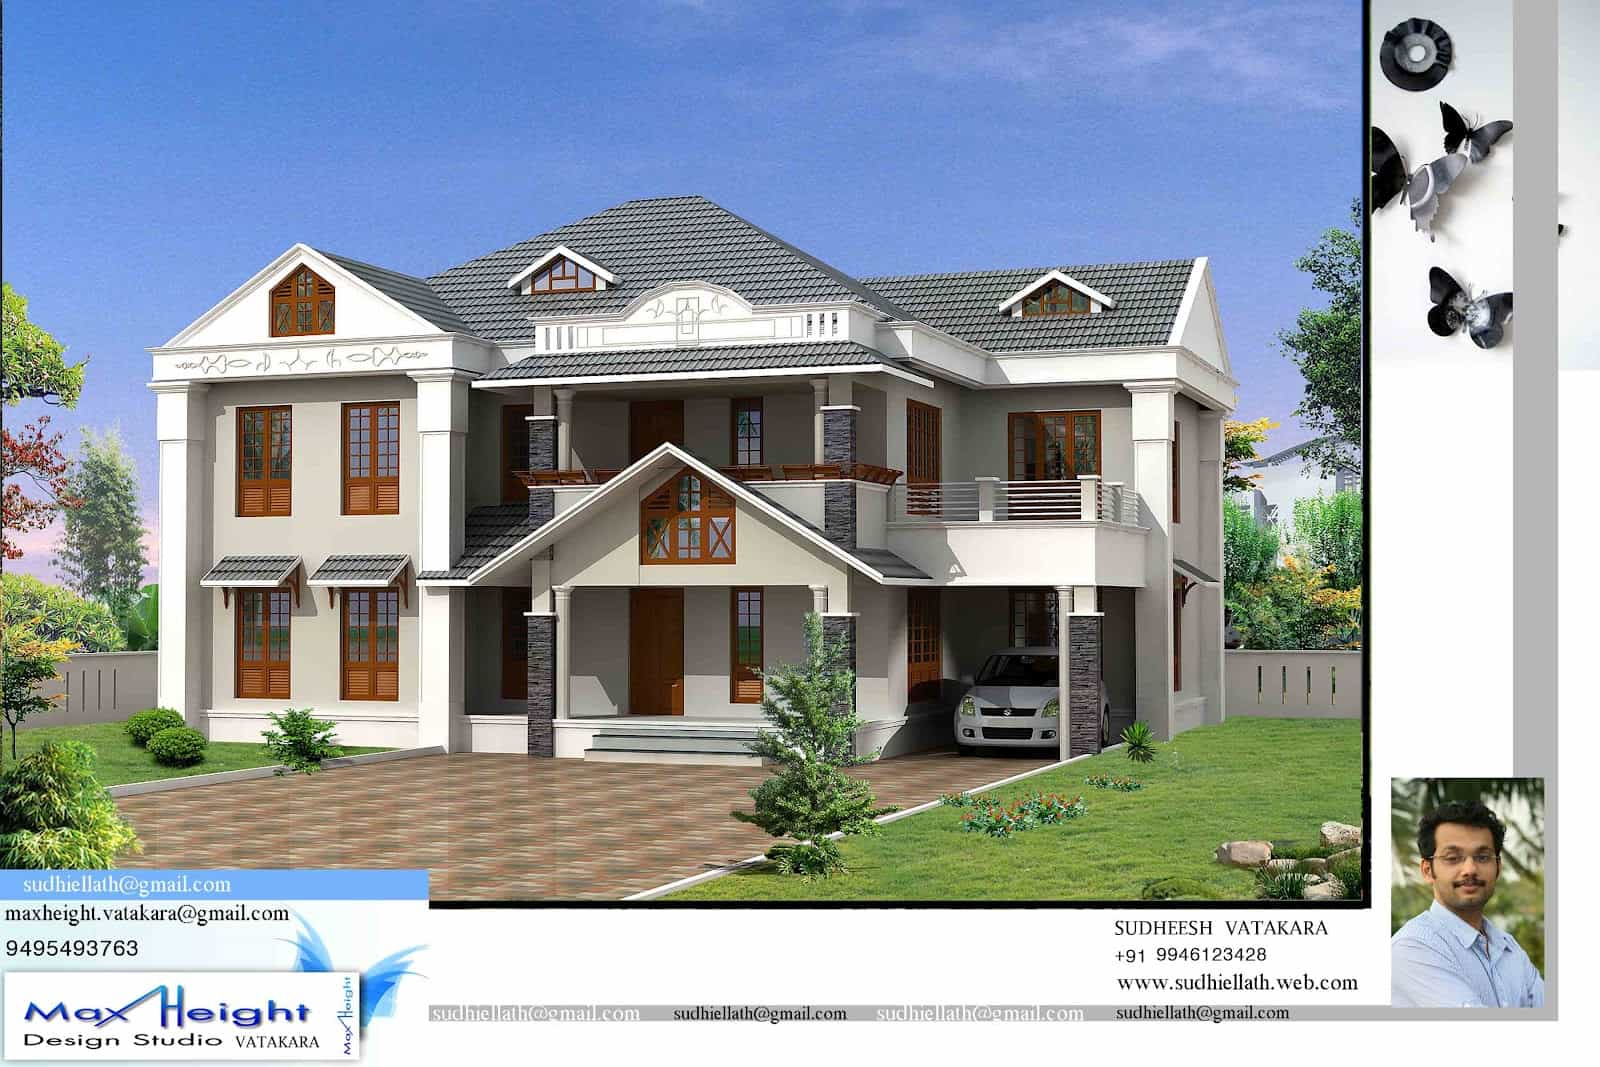 kerala house model latest kerala style home design On nouveau modele kerala home design